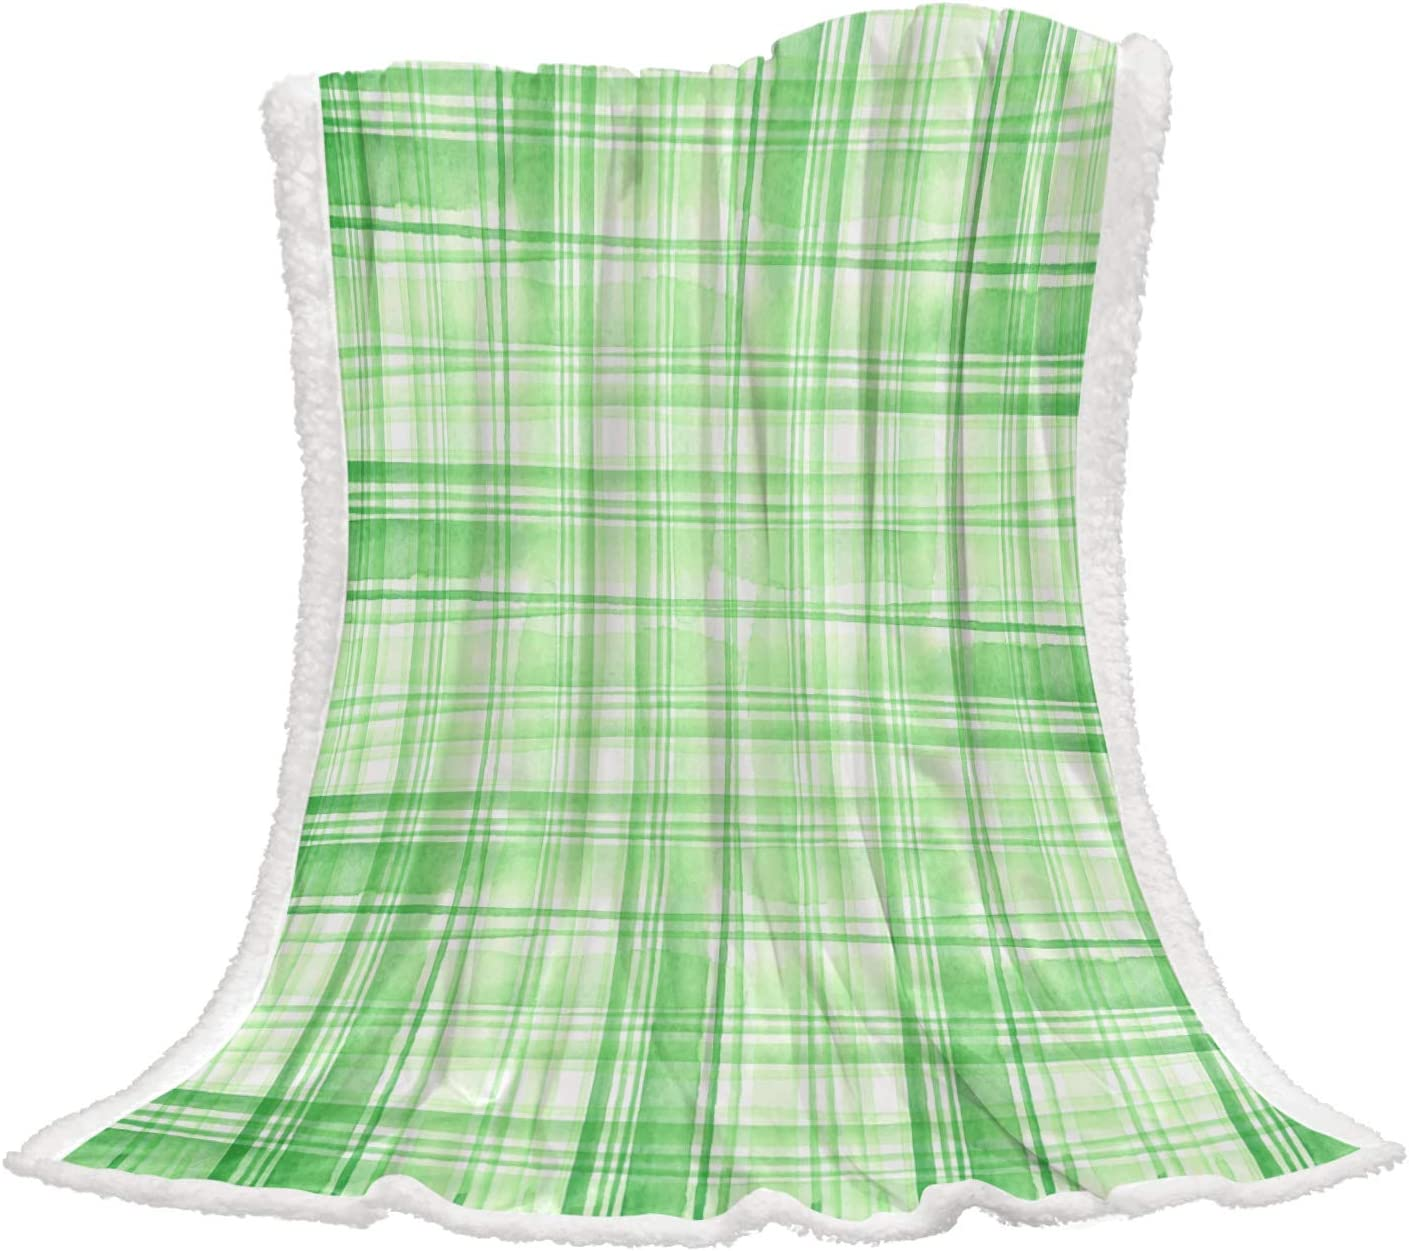 Futuregrace Green Lattice Ink Painting for Fleece Deluxe Throw Outlet SALE Blankets